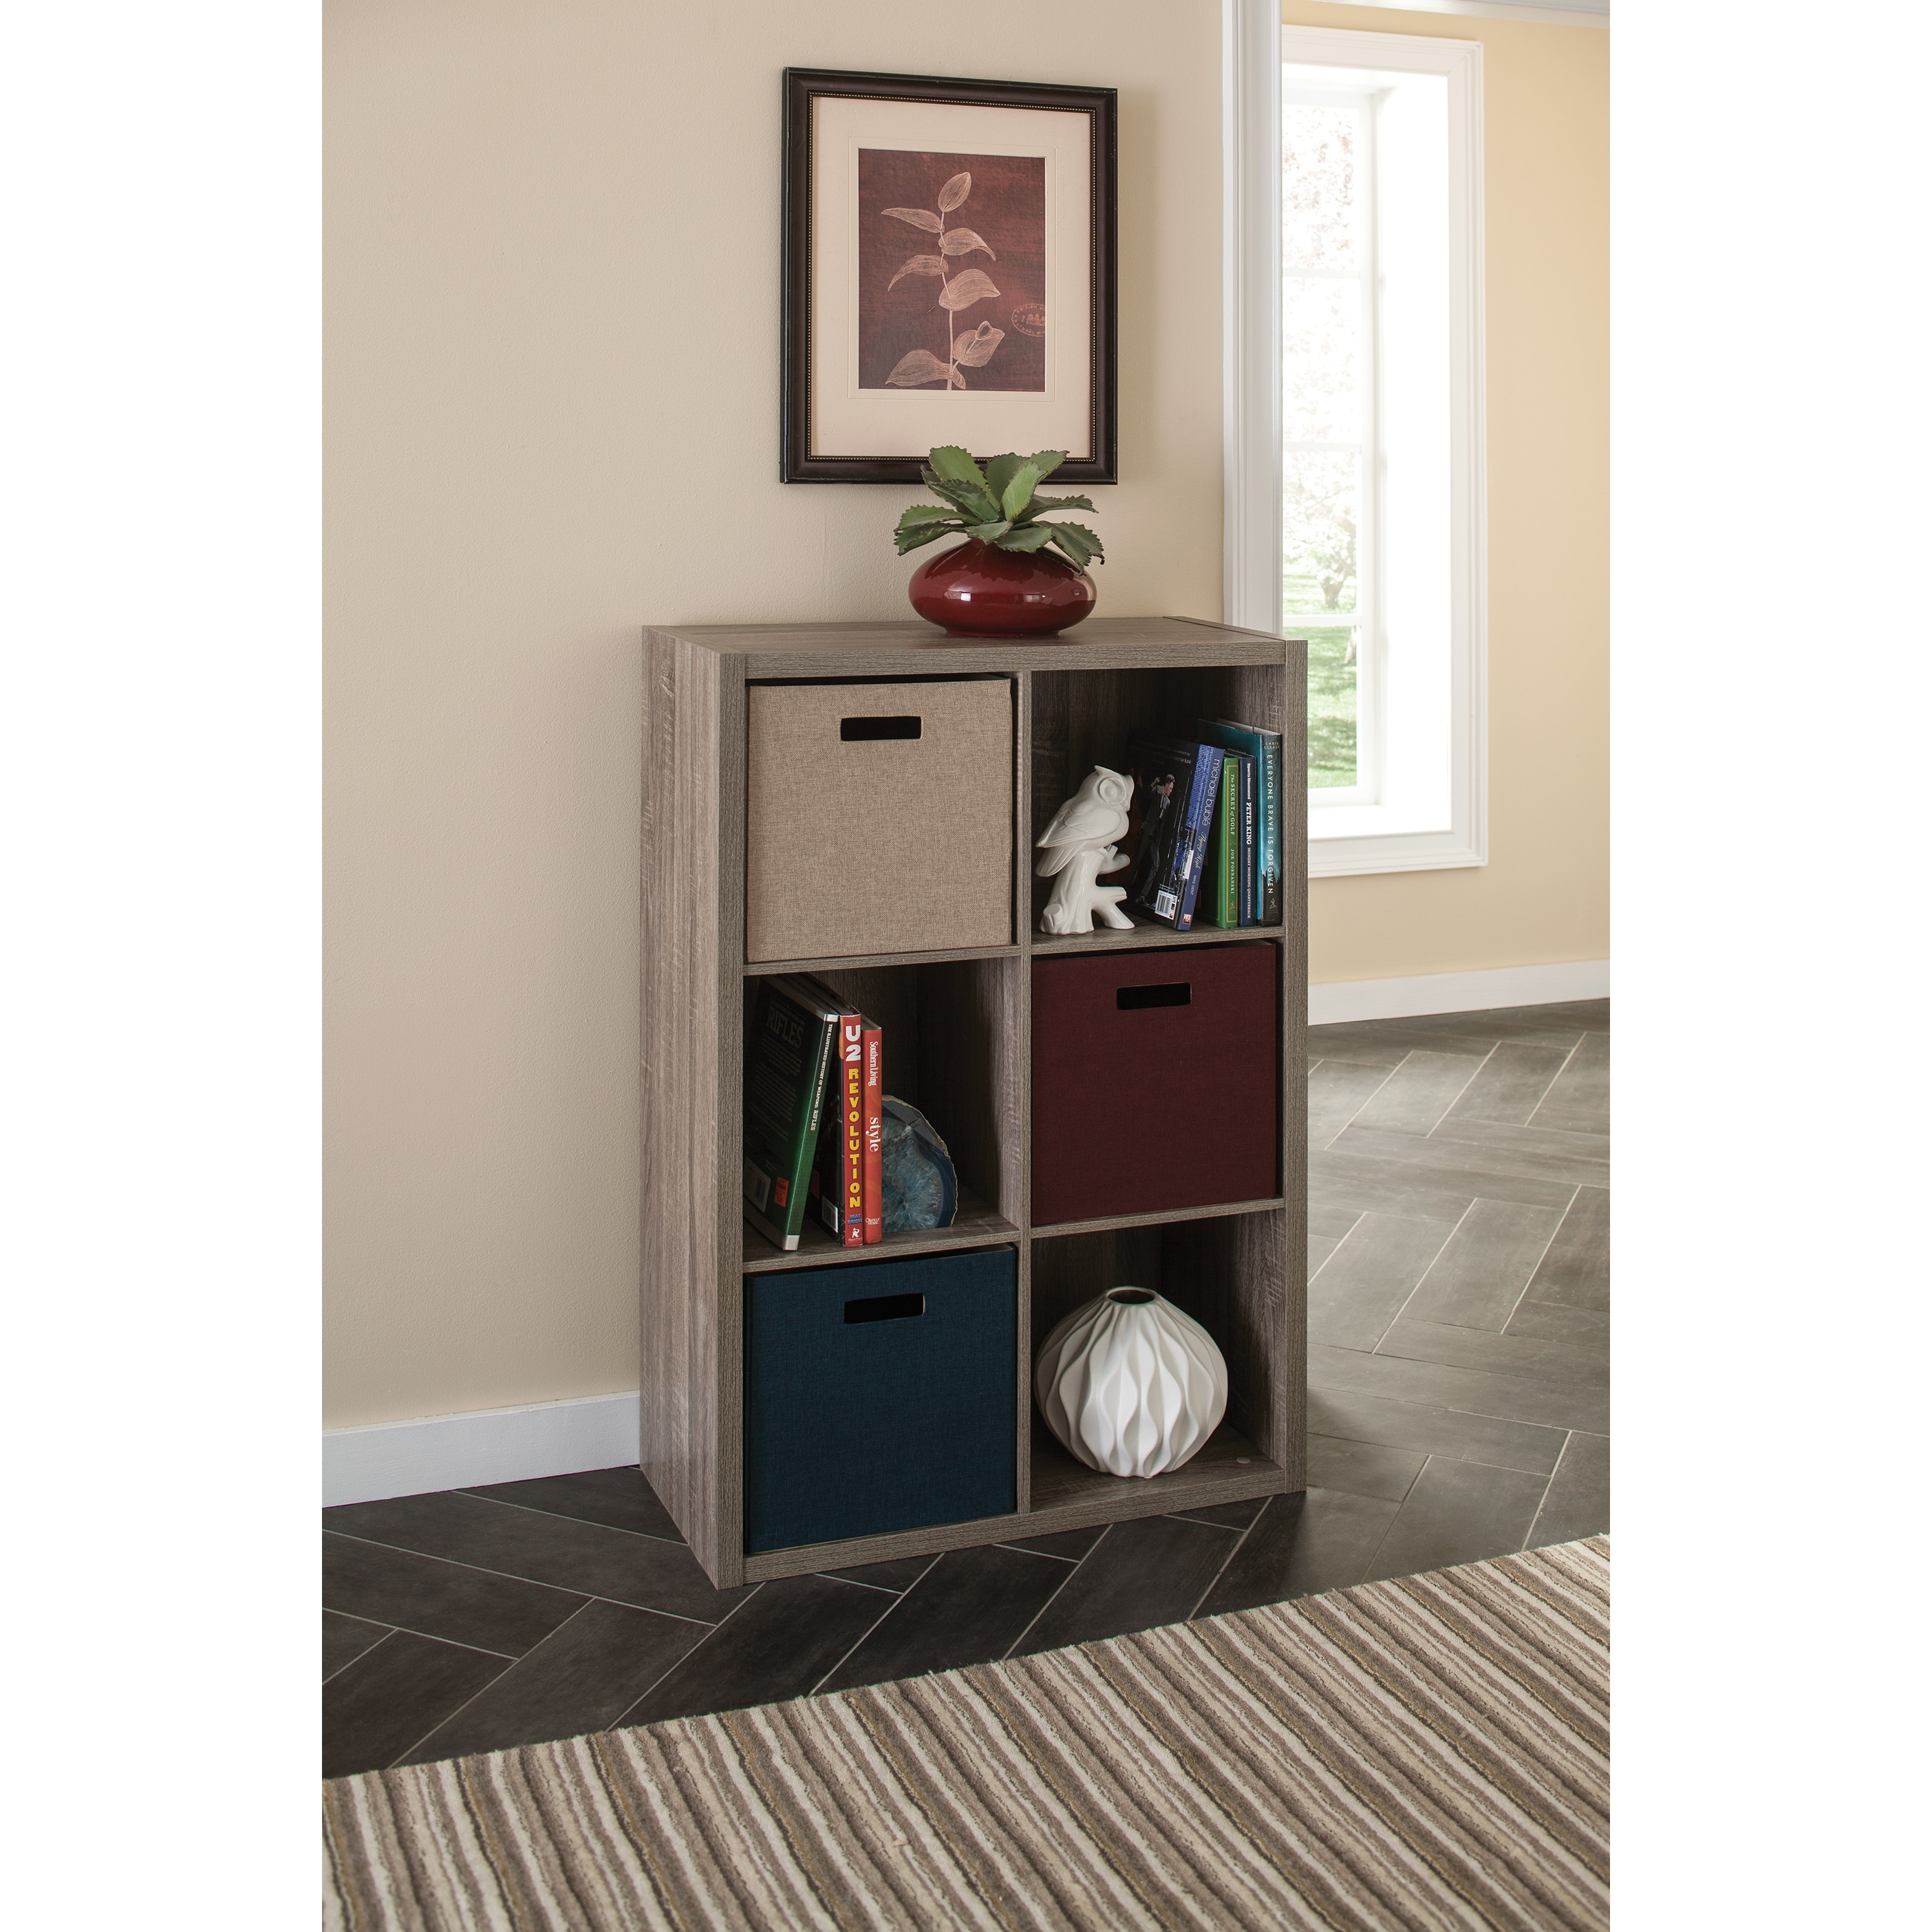 open handy p avington sturdy bookcase unit shelf storage threshold organizer cube